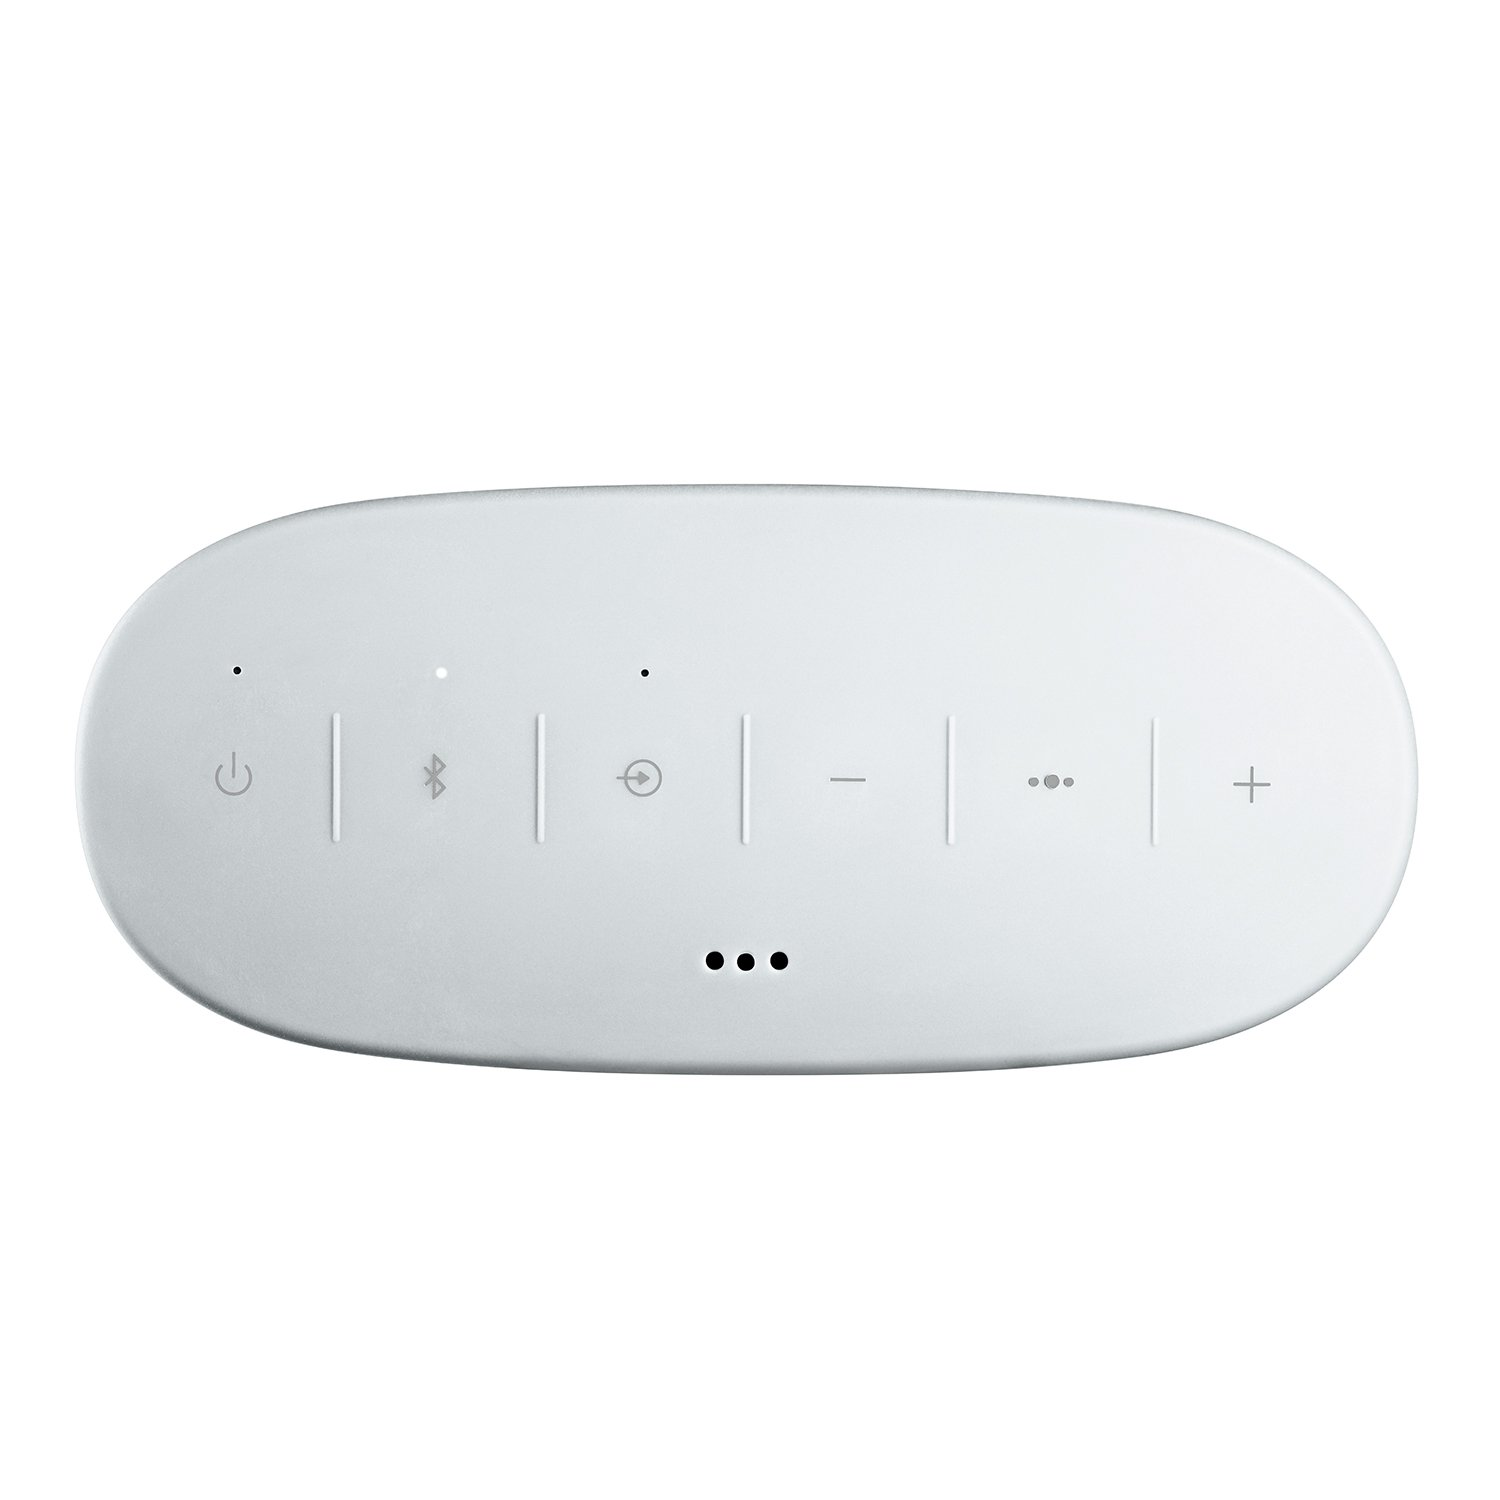 Bose SoundLink Color Bluetooth Speaker II - Polar White by Bose (Image #3)